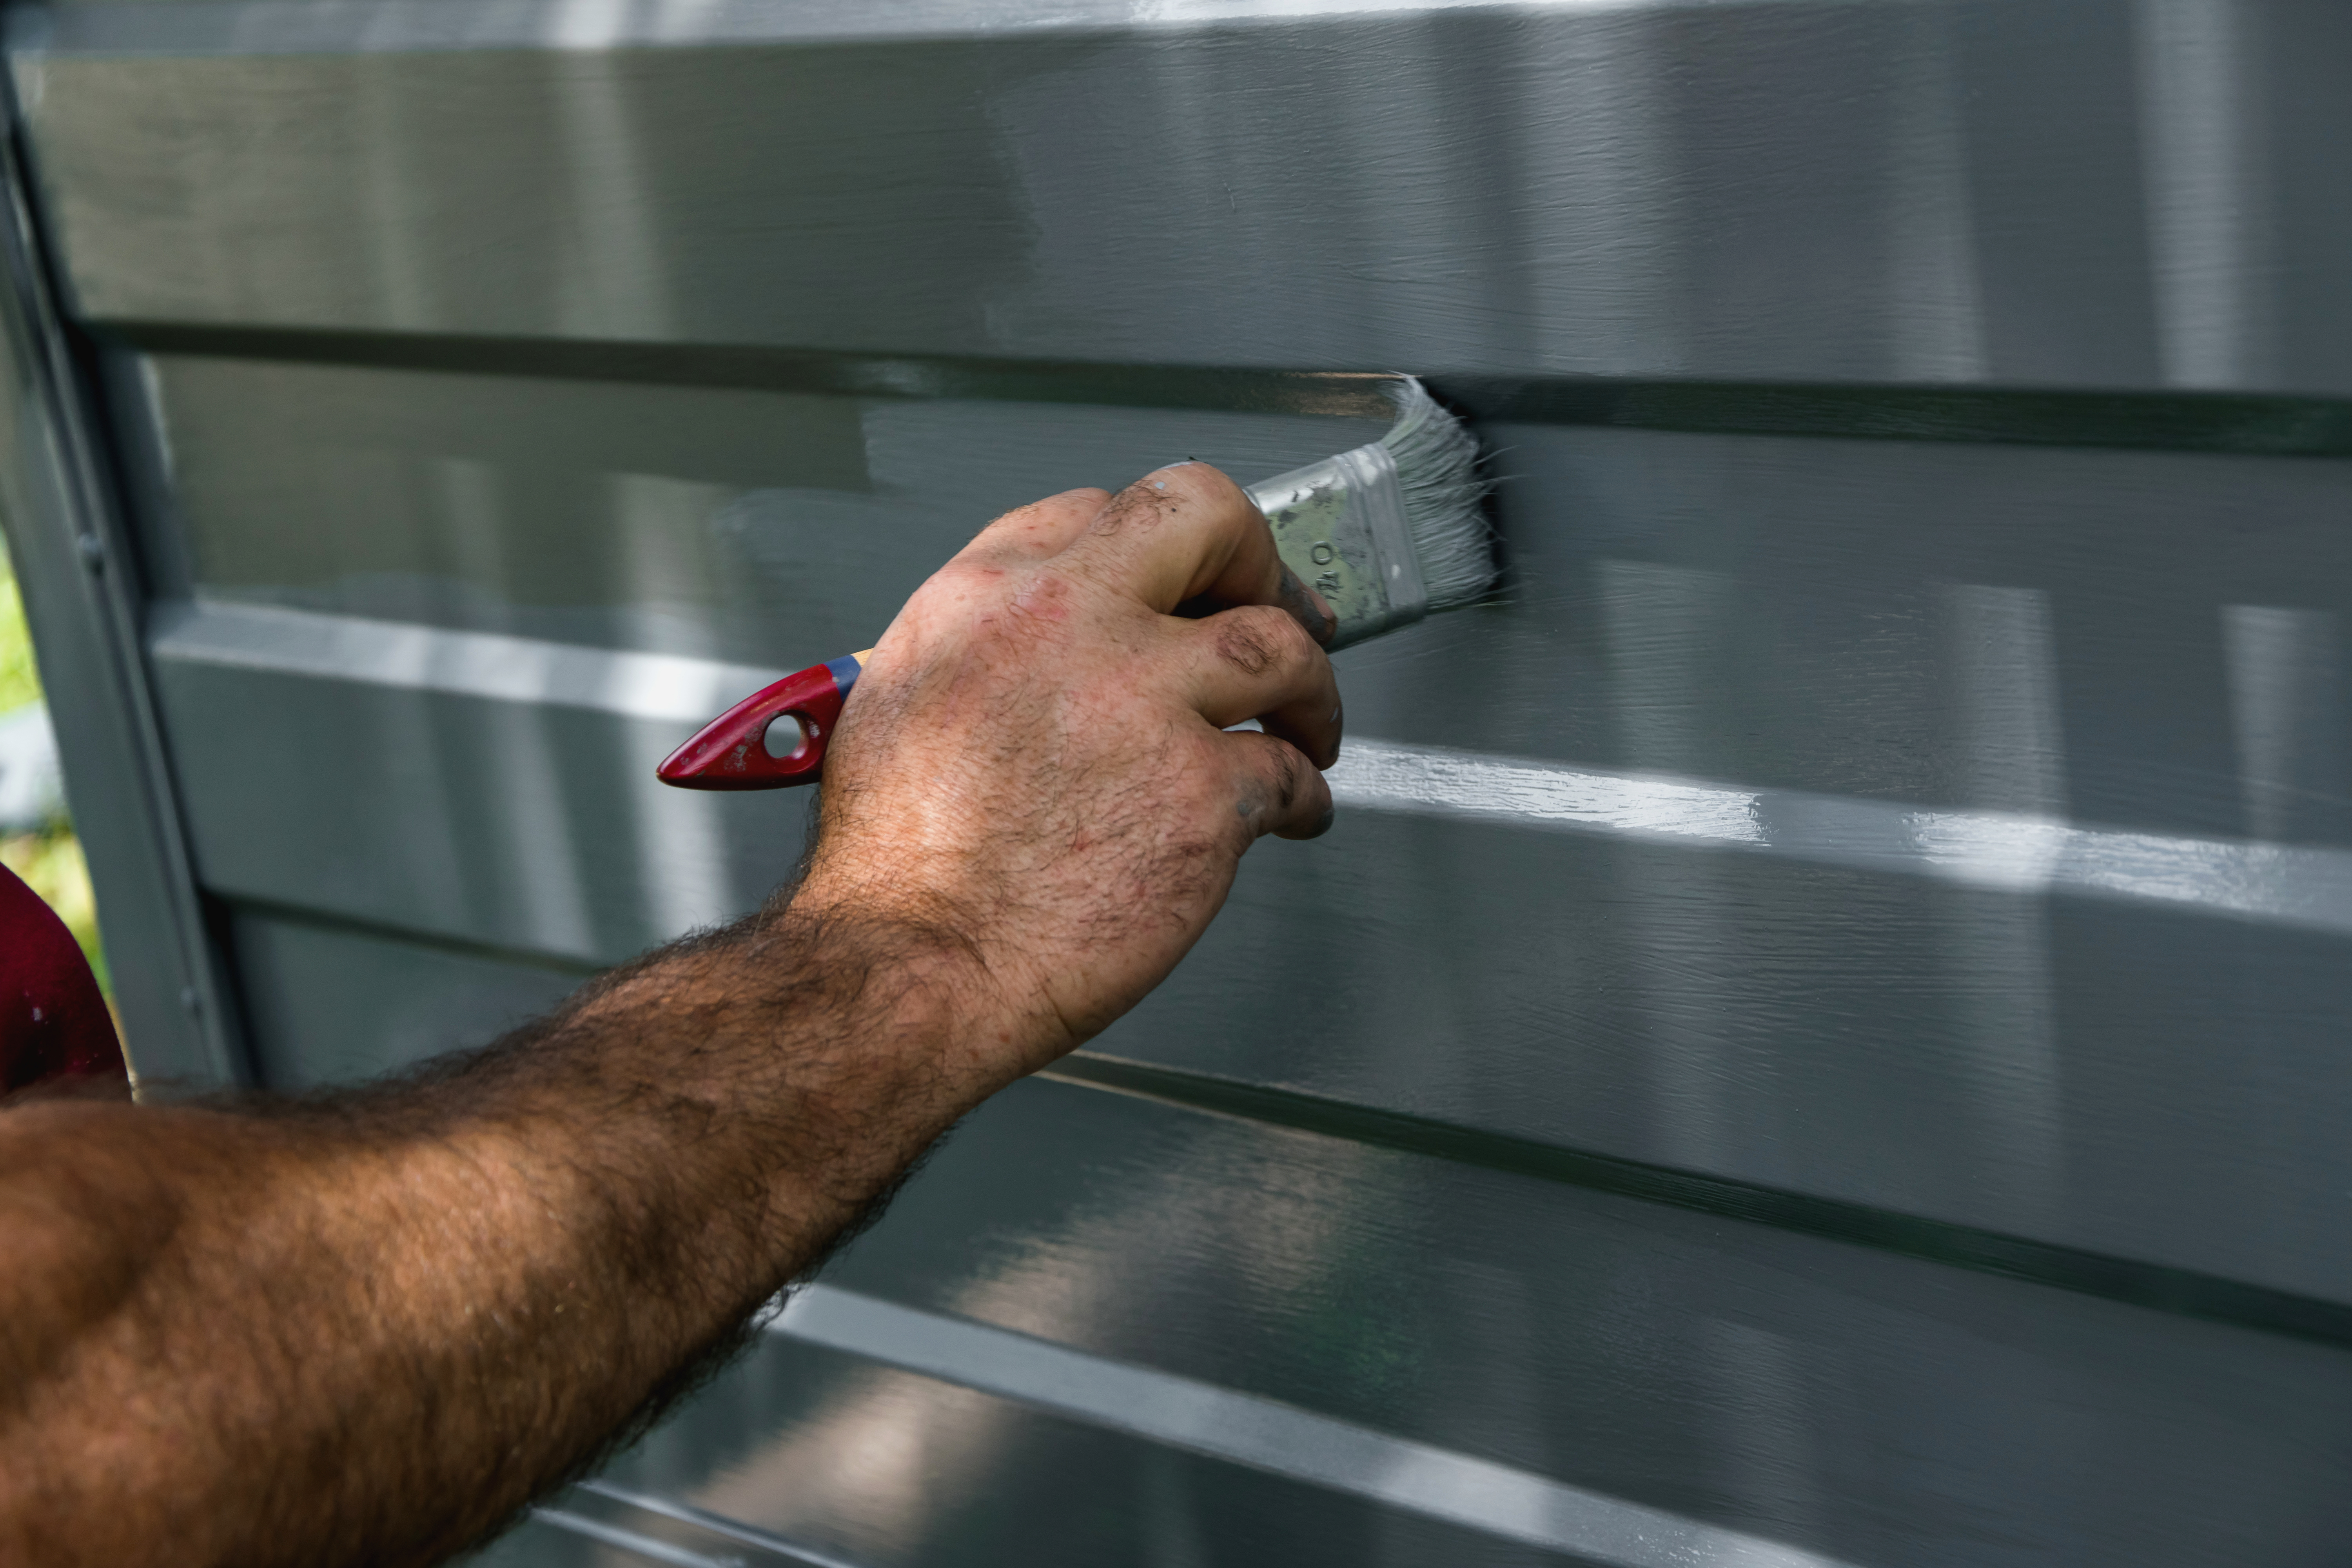 How to Repaint an Aluminum Door | Home Guides | SF Gate Painting Mobile Home Aluminum Door on painting mobile home kitchen, painting mobile home cabinets, painting mobile home paneling, painting mobile home ceilings, painting mobile home wood, painting mobile home interior, painting mobile home floors, painting mobile home countertops, painting mobile home skirting,